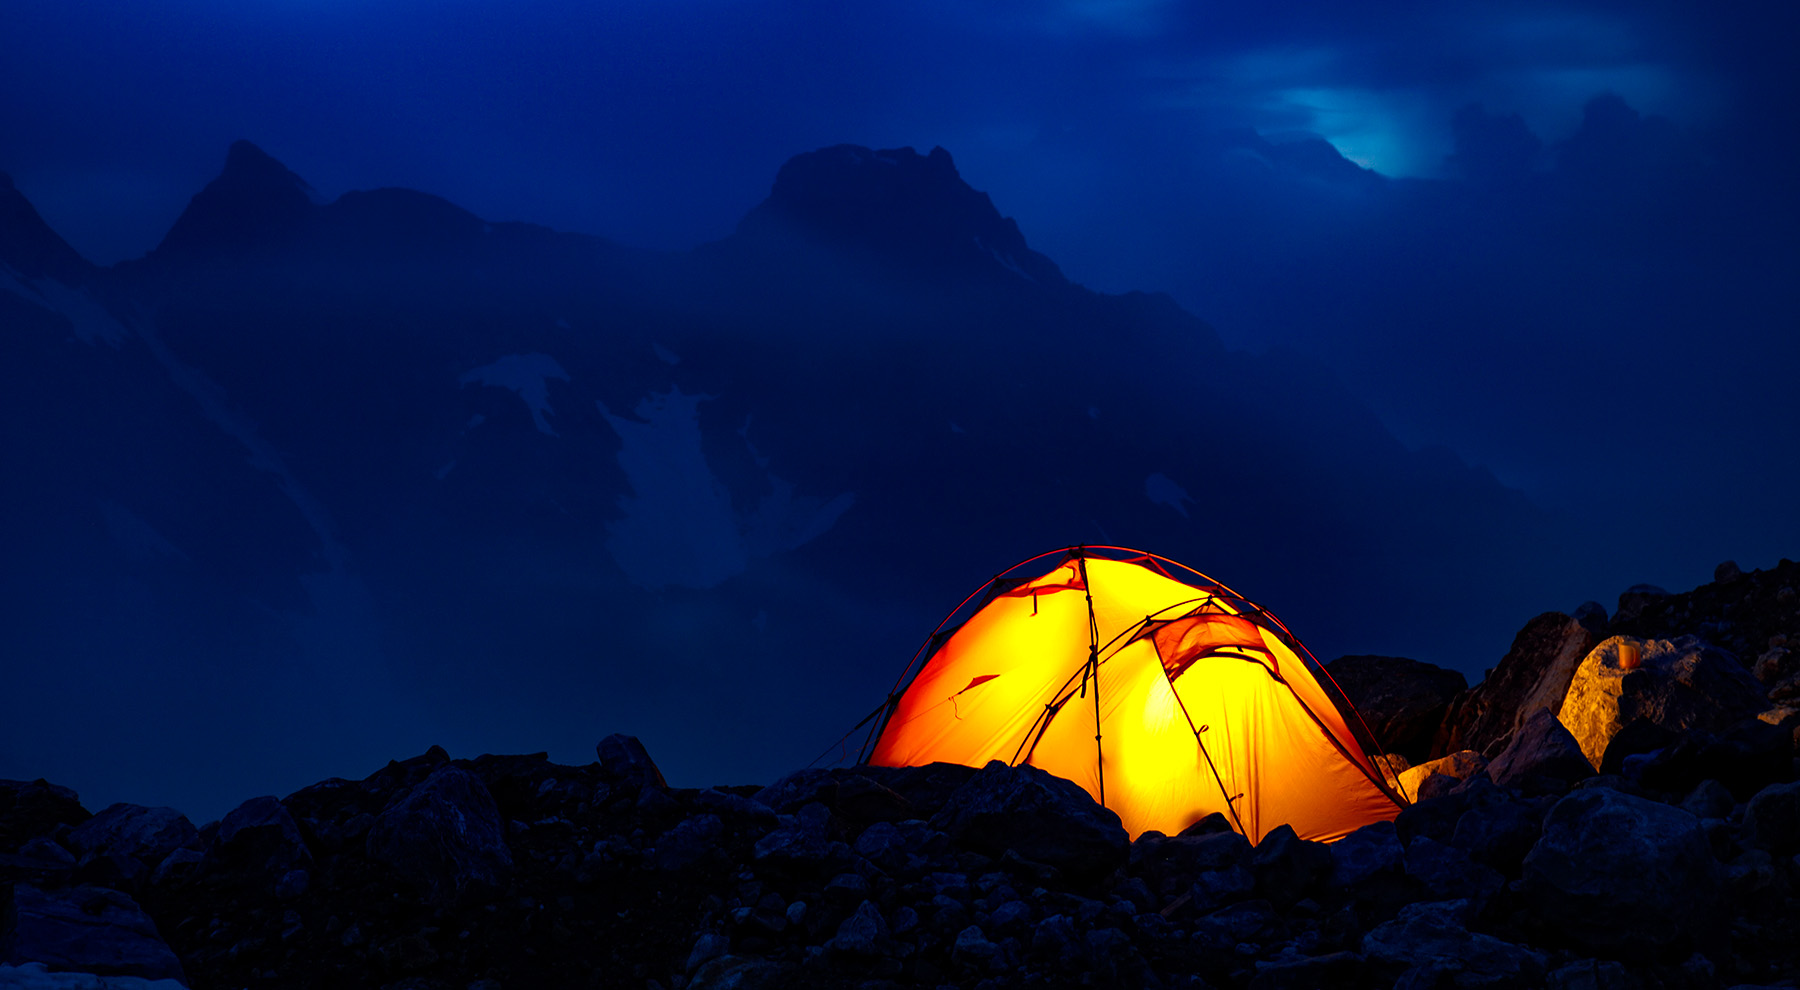 Mountaineering tent in sheep country.